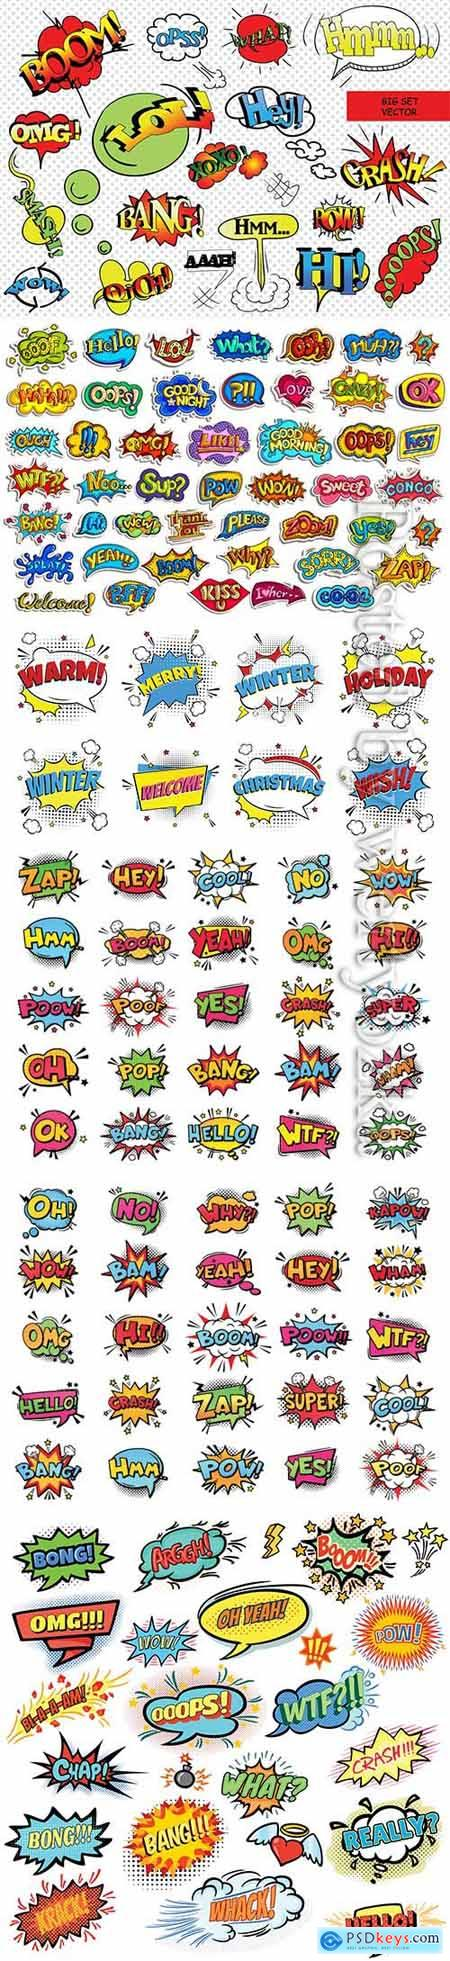 Sticker collection for comic style chat bubble for different word